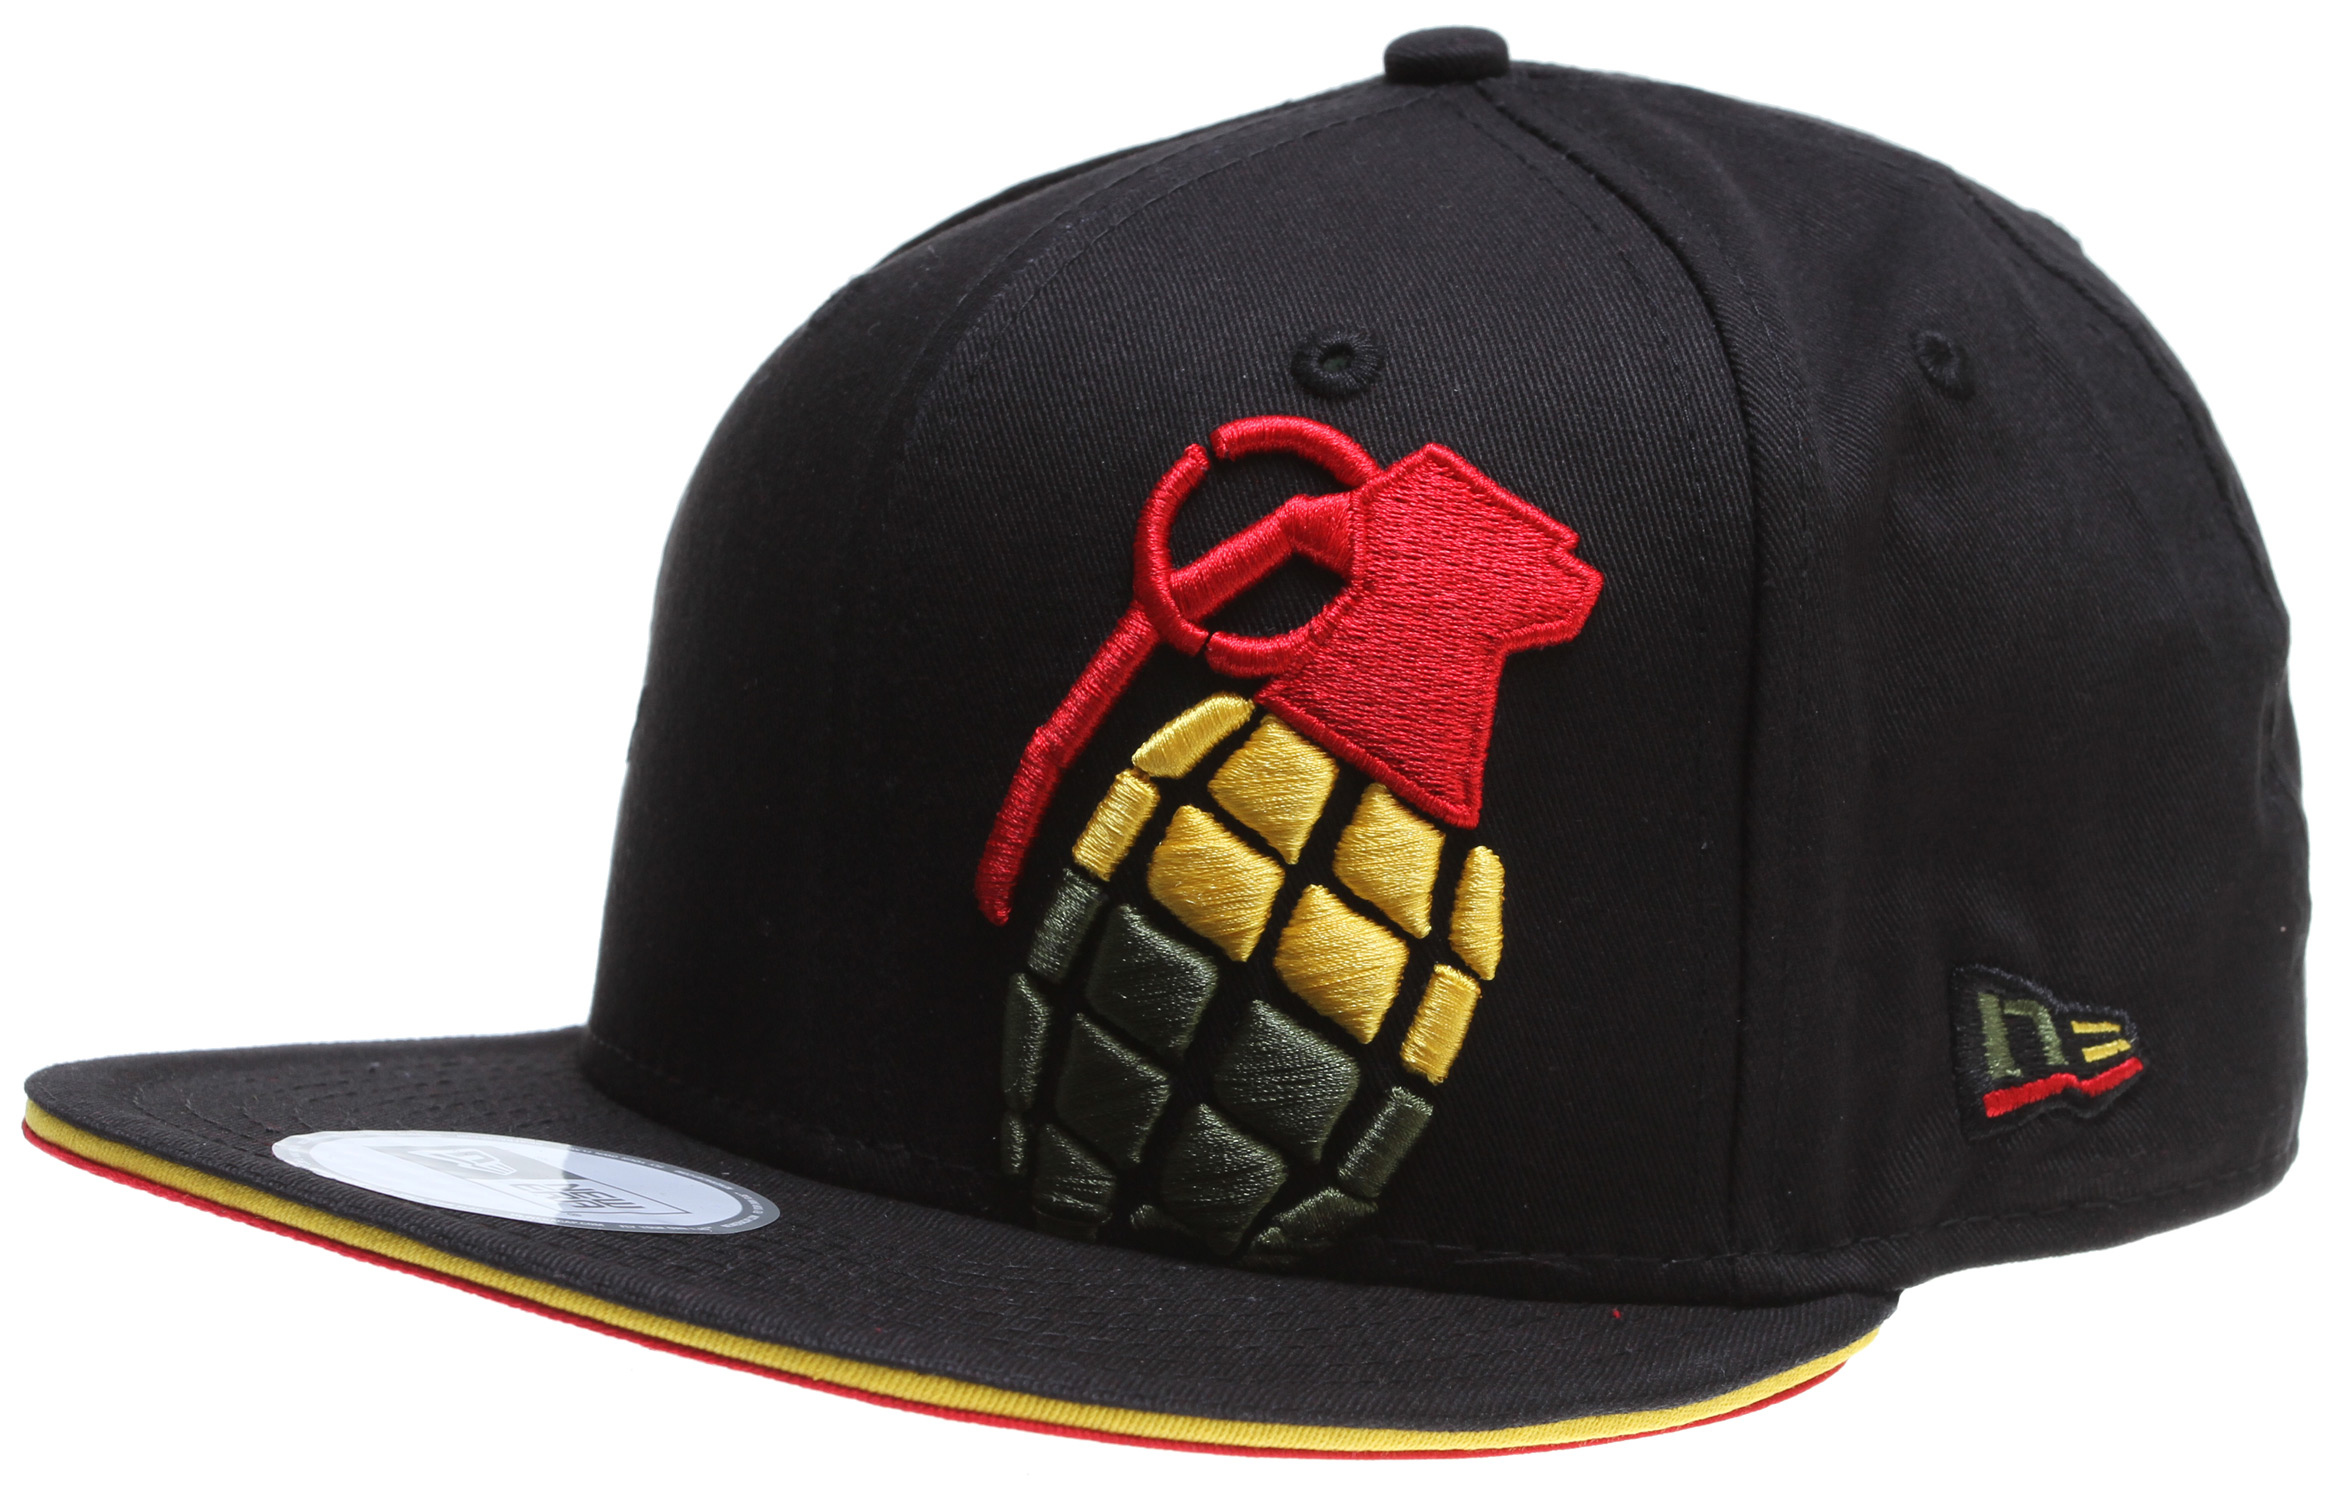 Key Features of the Grenade Halfer Irie Cap: 100% Cotton NEW ERA SNAP BACK Embroidered logo - $17.95